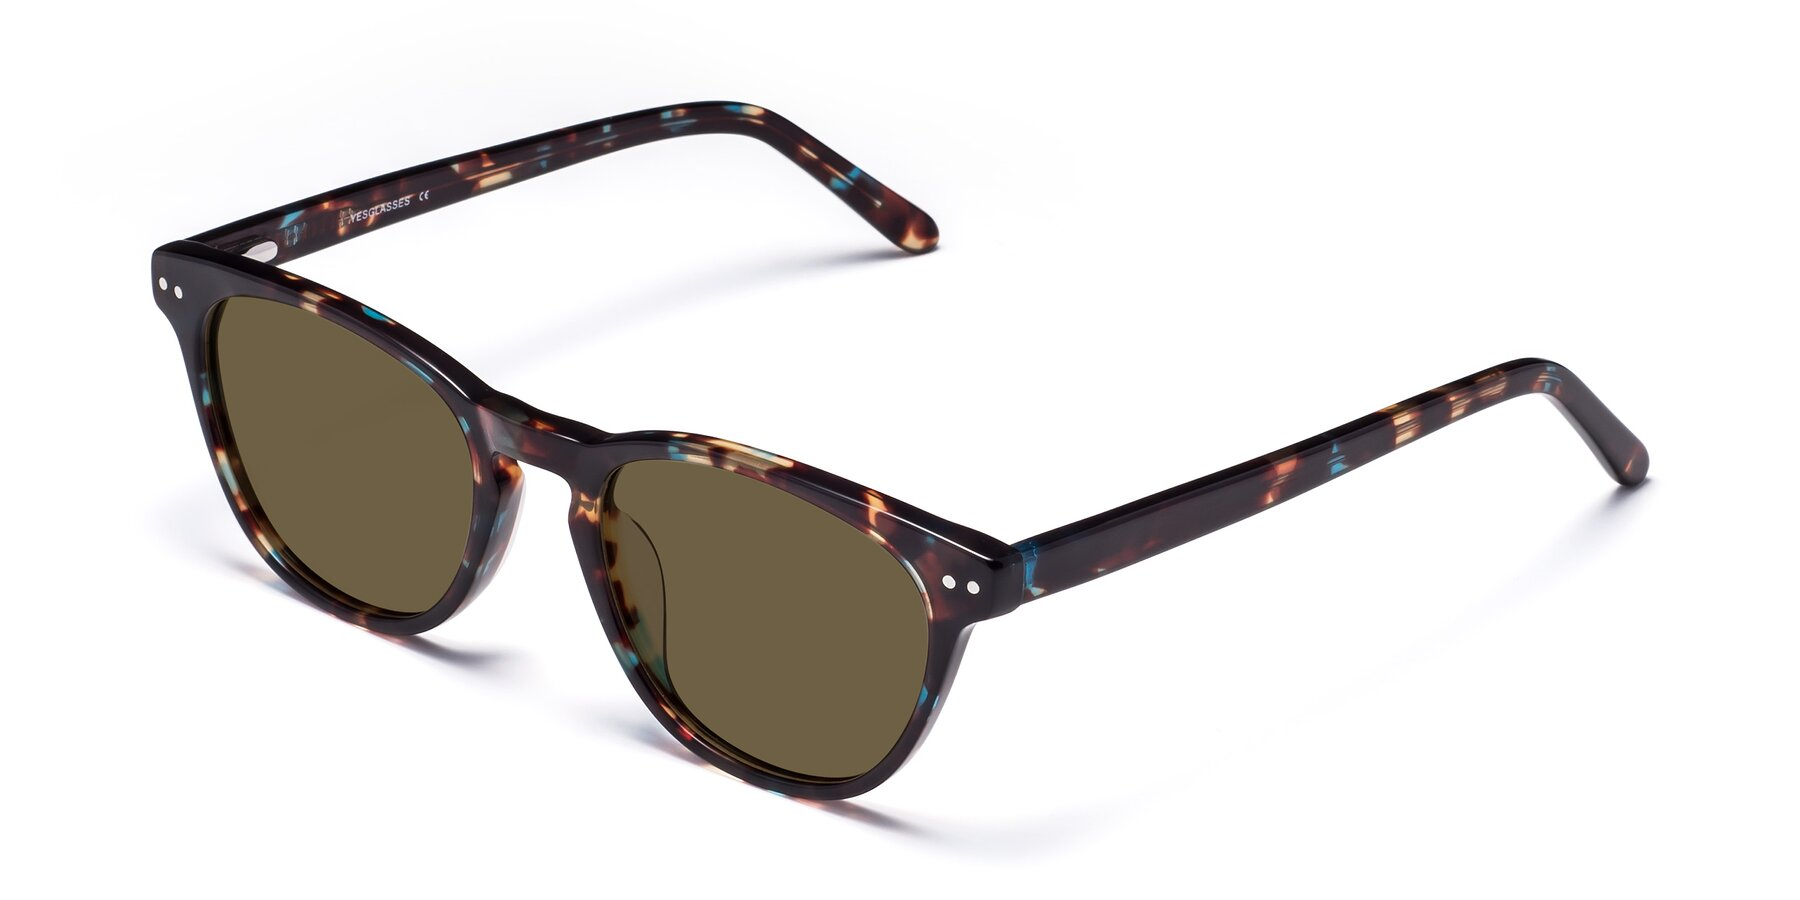 Angle of Blaze in Tortoise-Blue with Brown Polarized Lenses